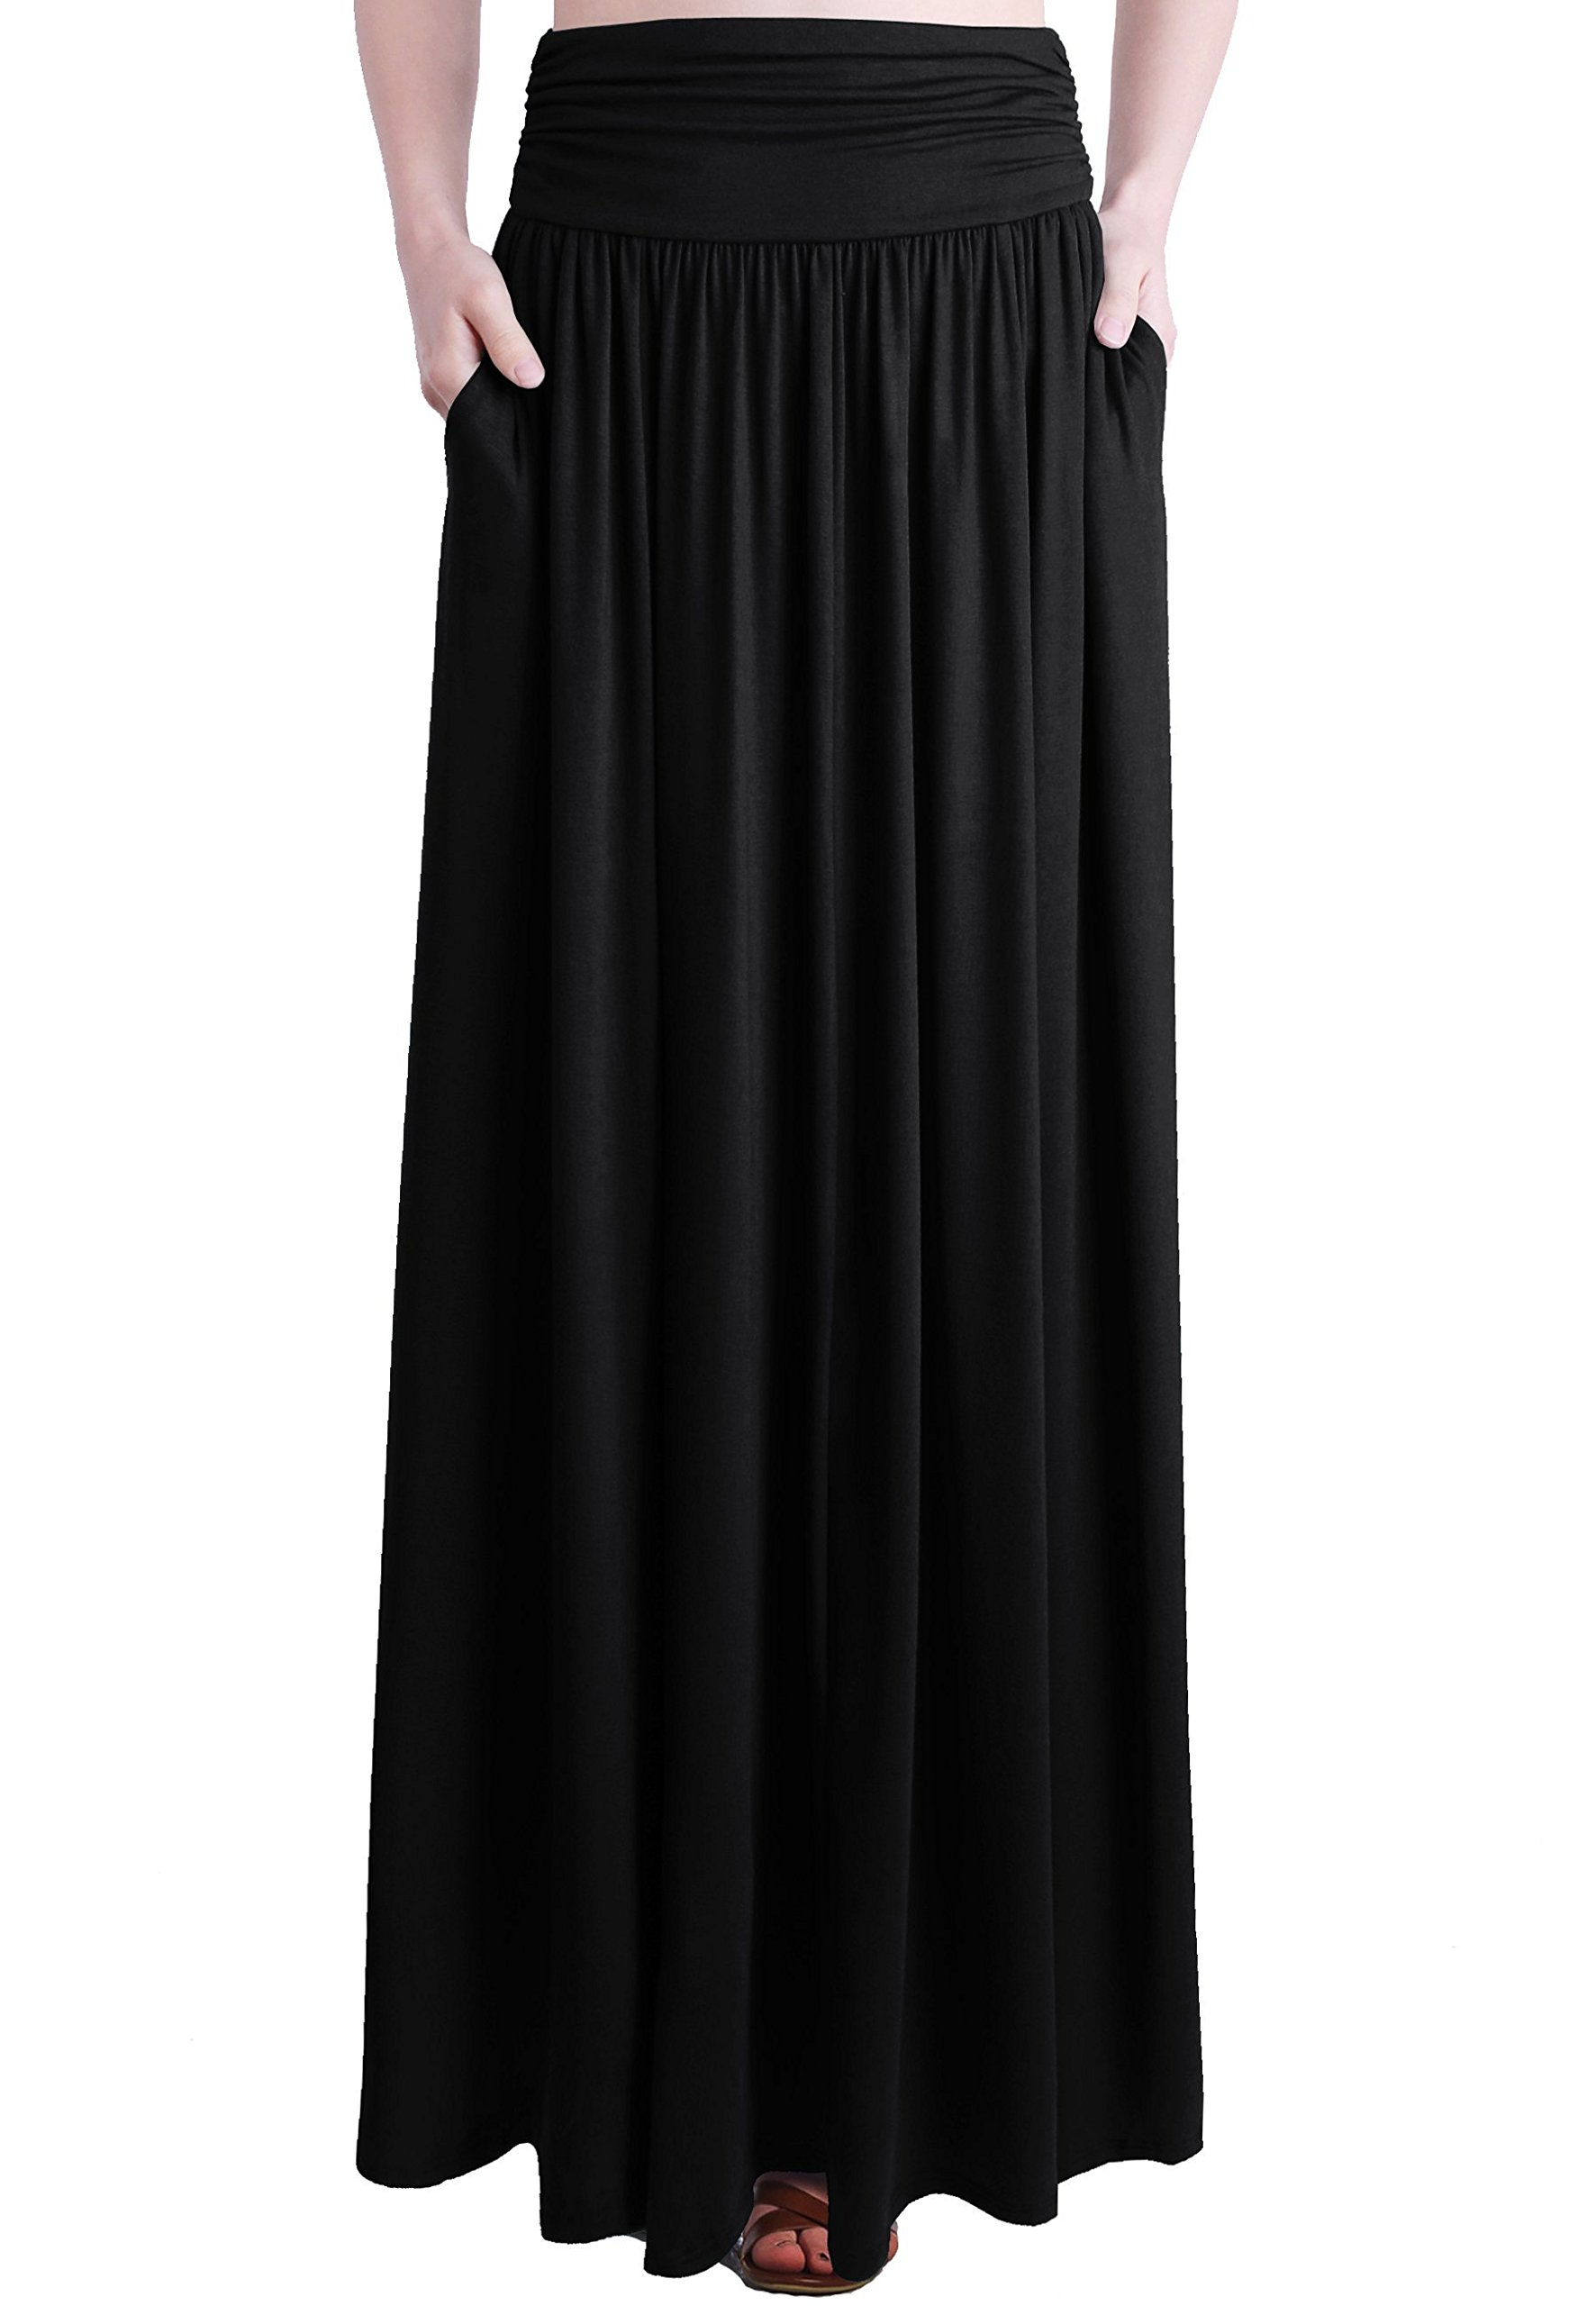 TRENDY UNITED Women's Rayon Spandex High Waist Shirring Maxi Skirt With Pockets (Blk, Small)